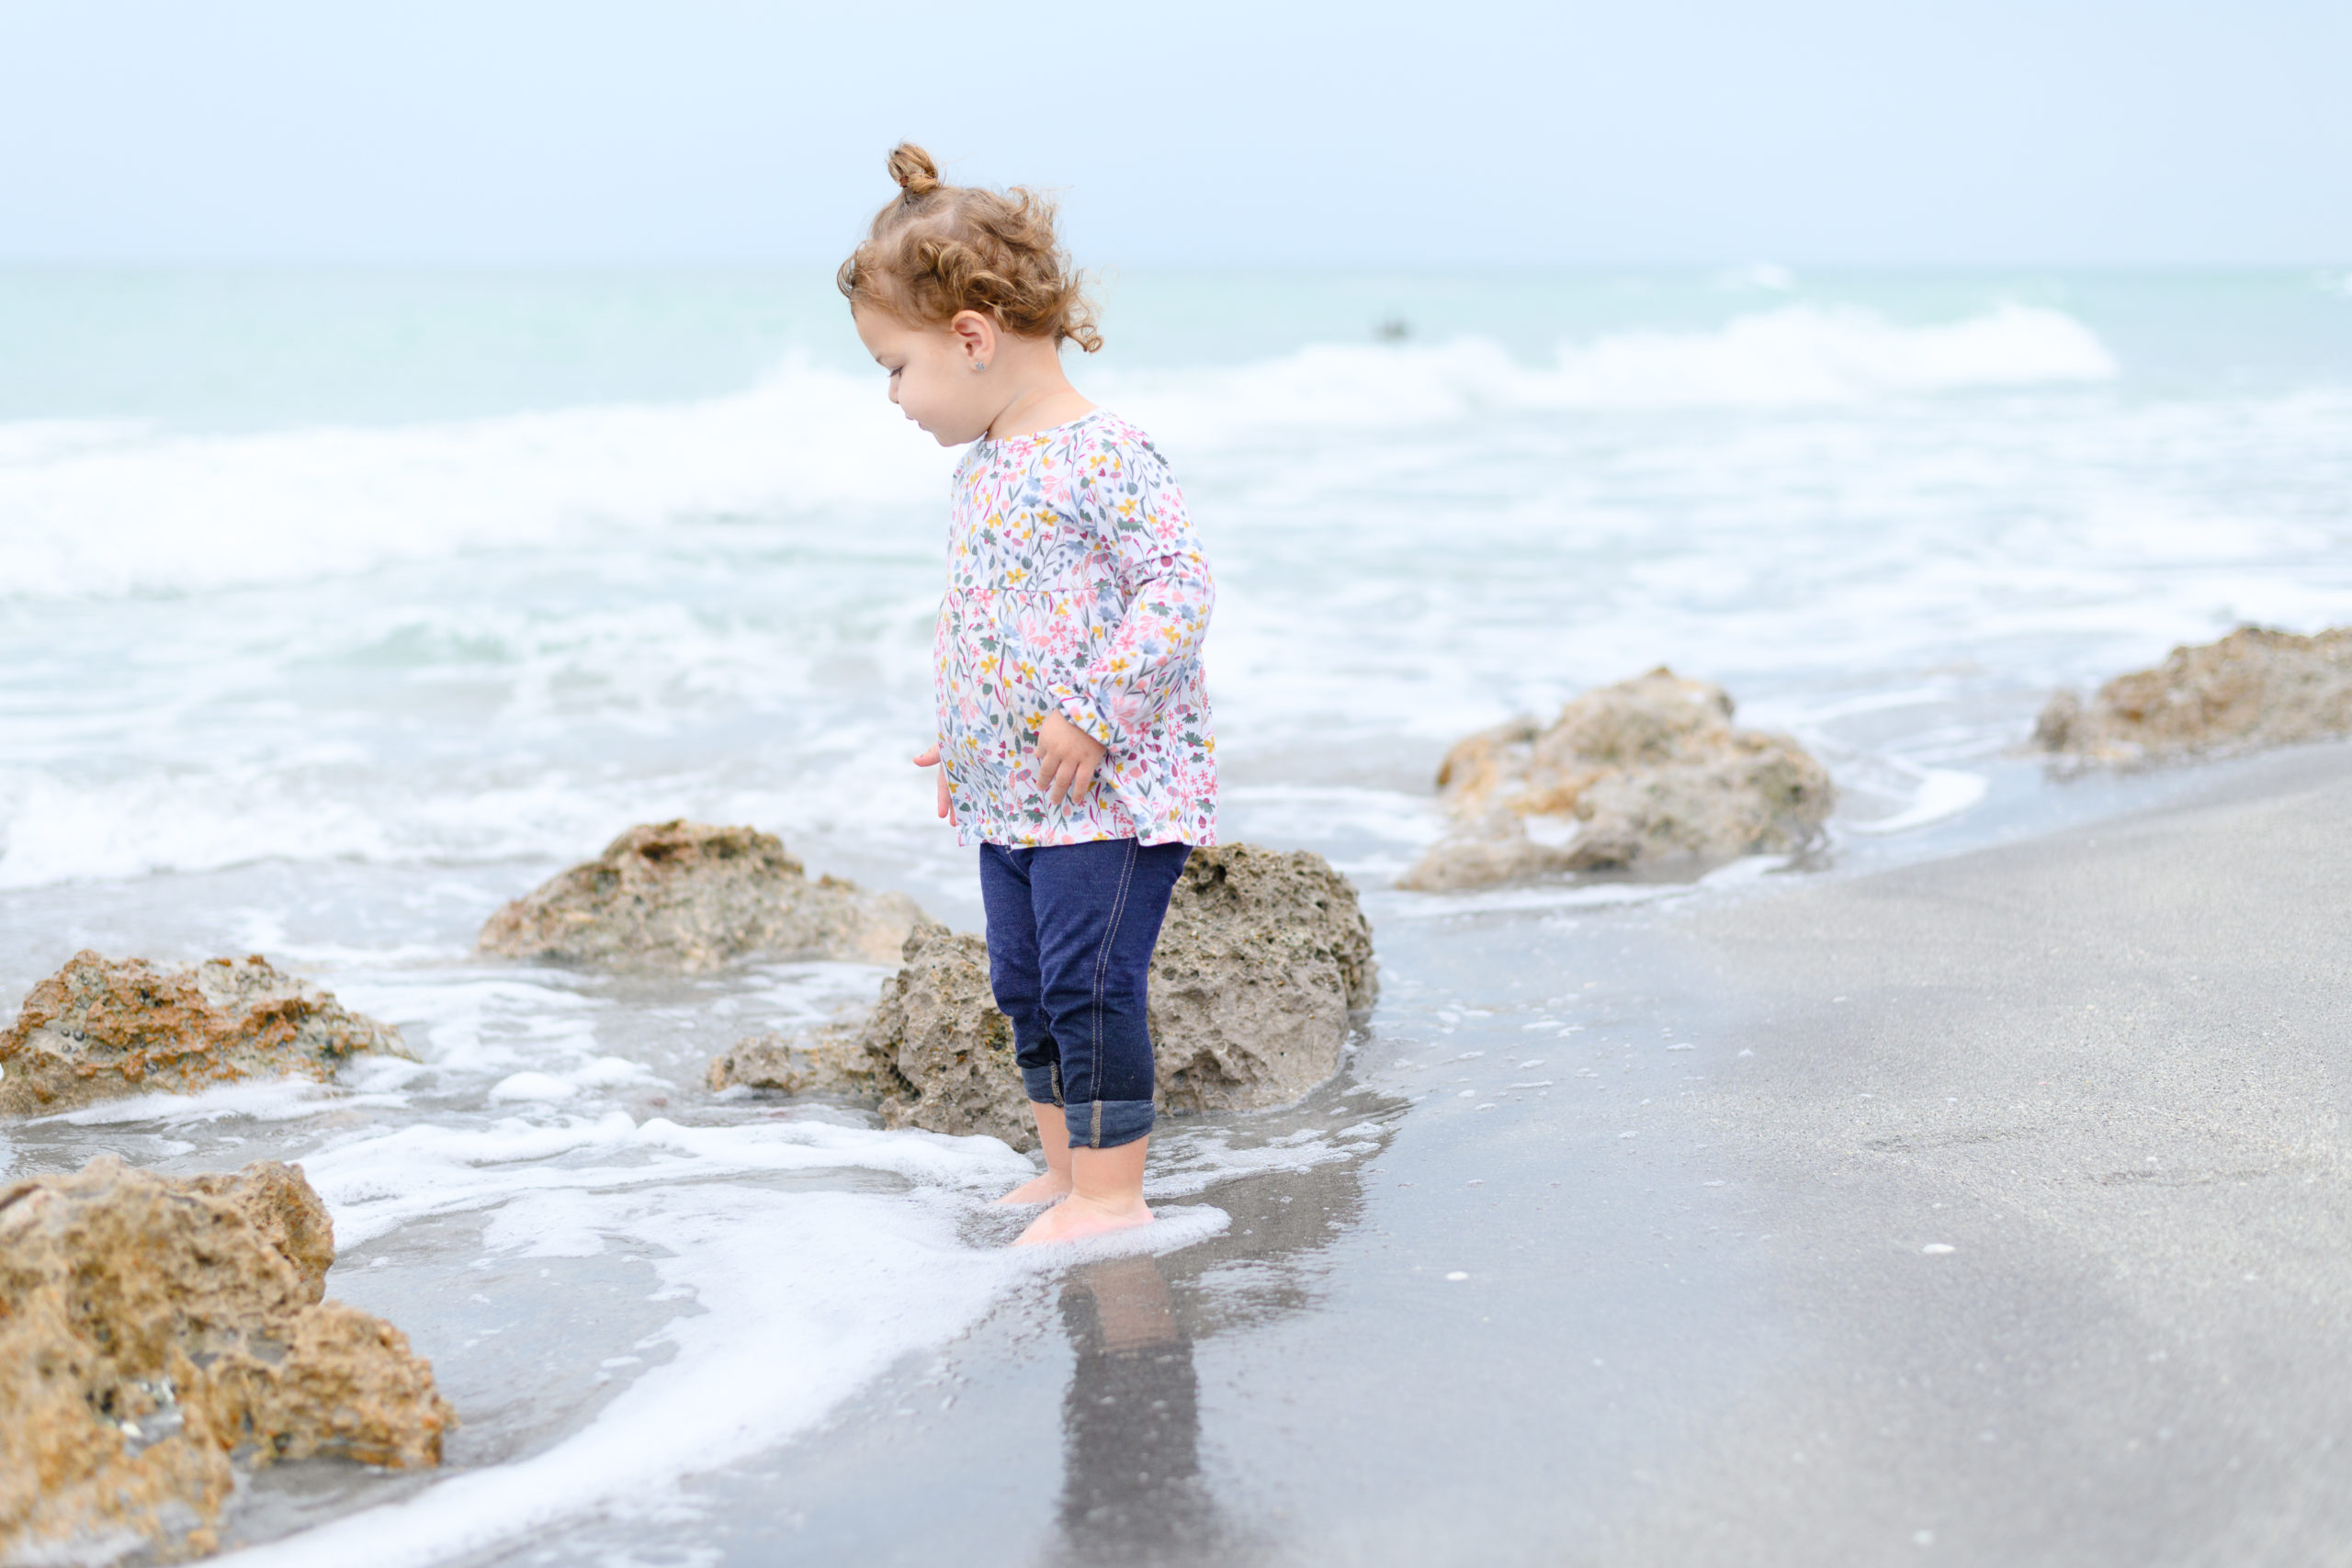 Young toddler girl with her feet in the water at the beach, admiring the way the waves crash against the large rocks. Taken during family beach session in Venice Beach